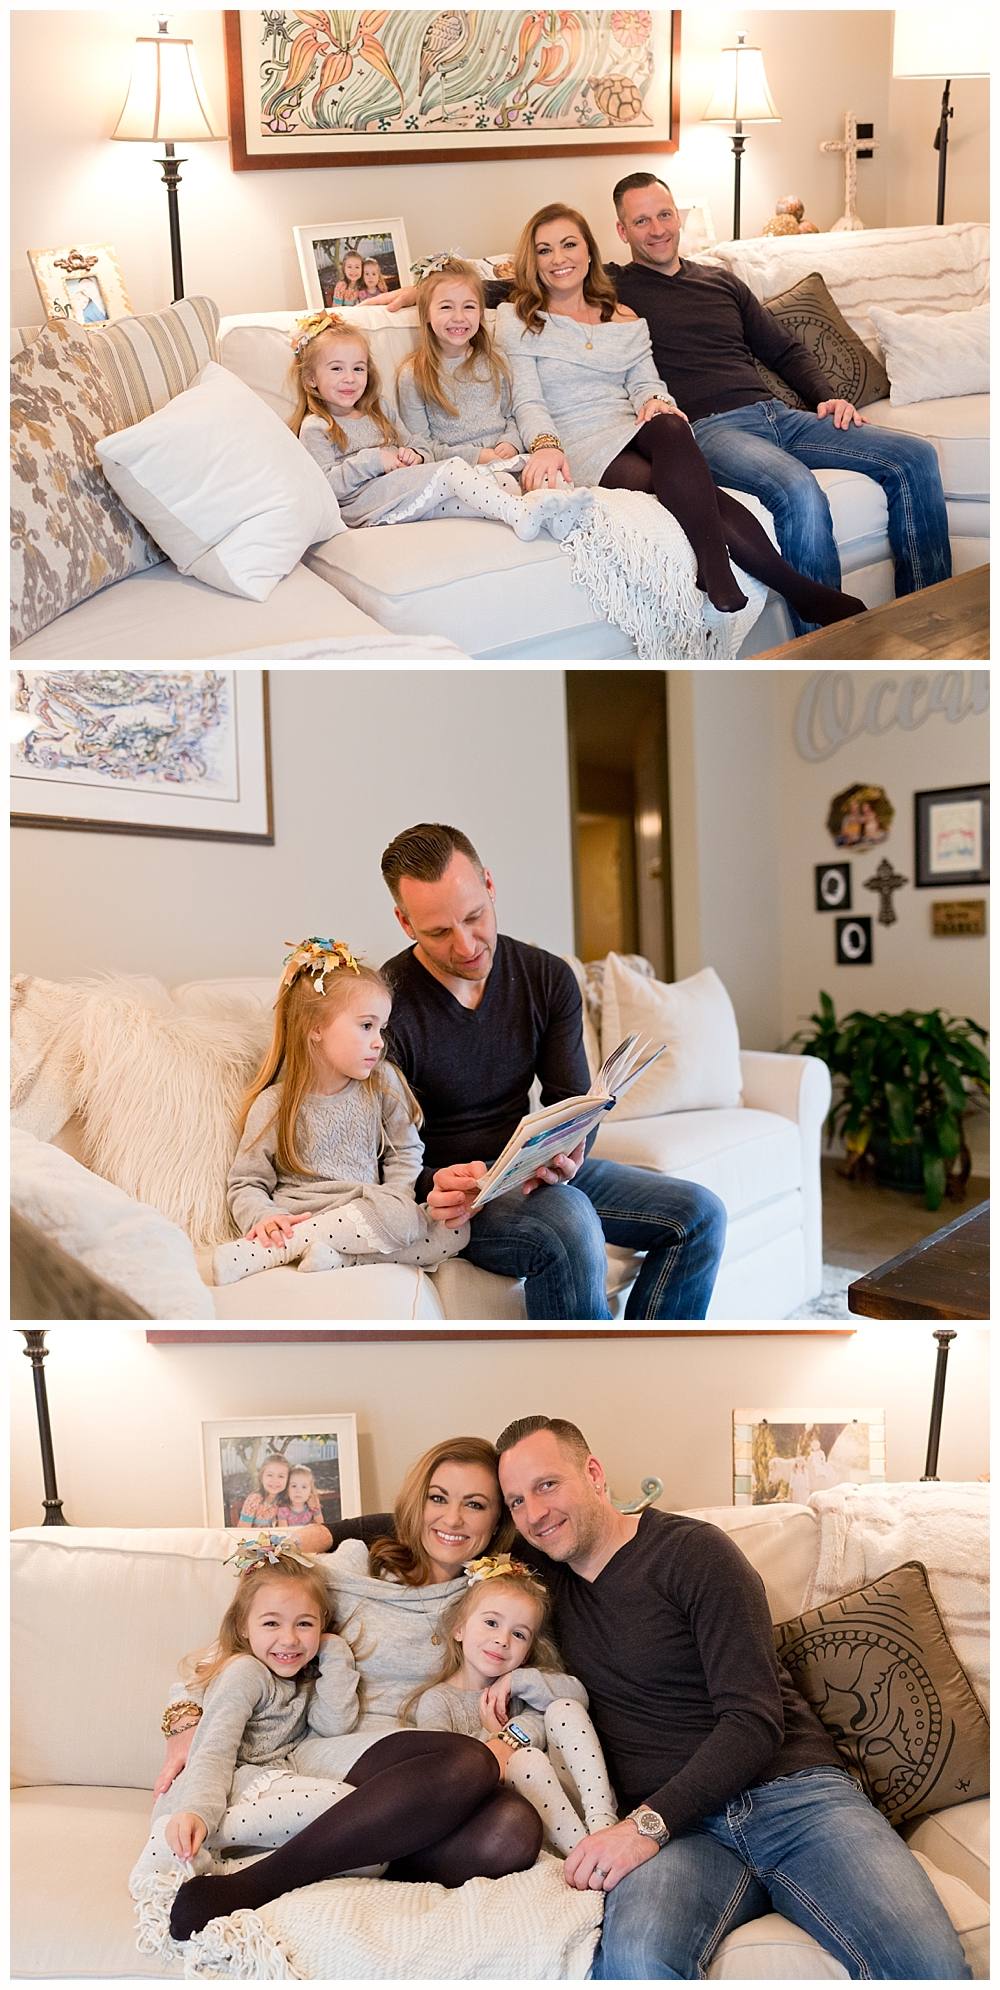 at-home lifestyle family photos in Ocean Springs, Mississippi